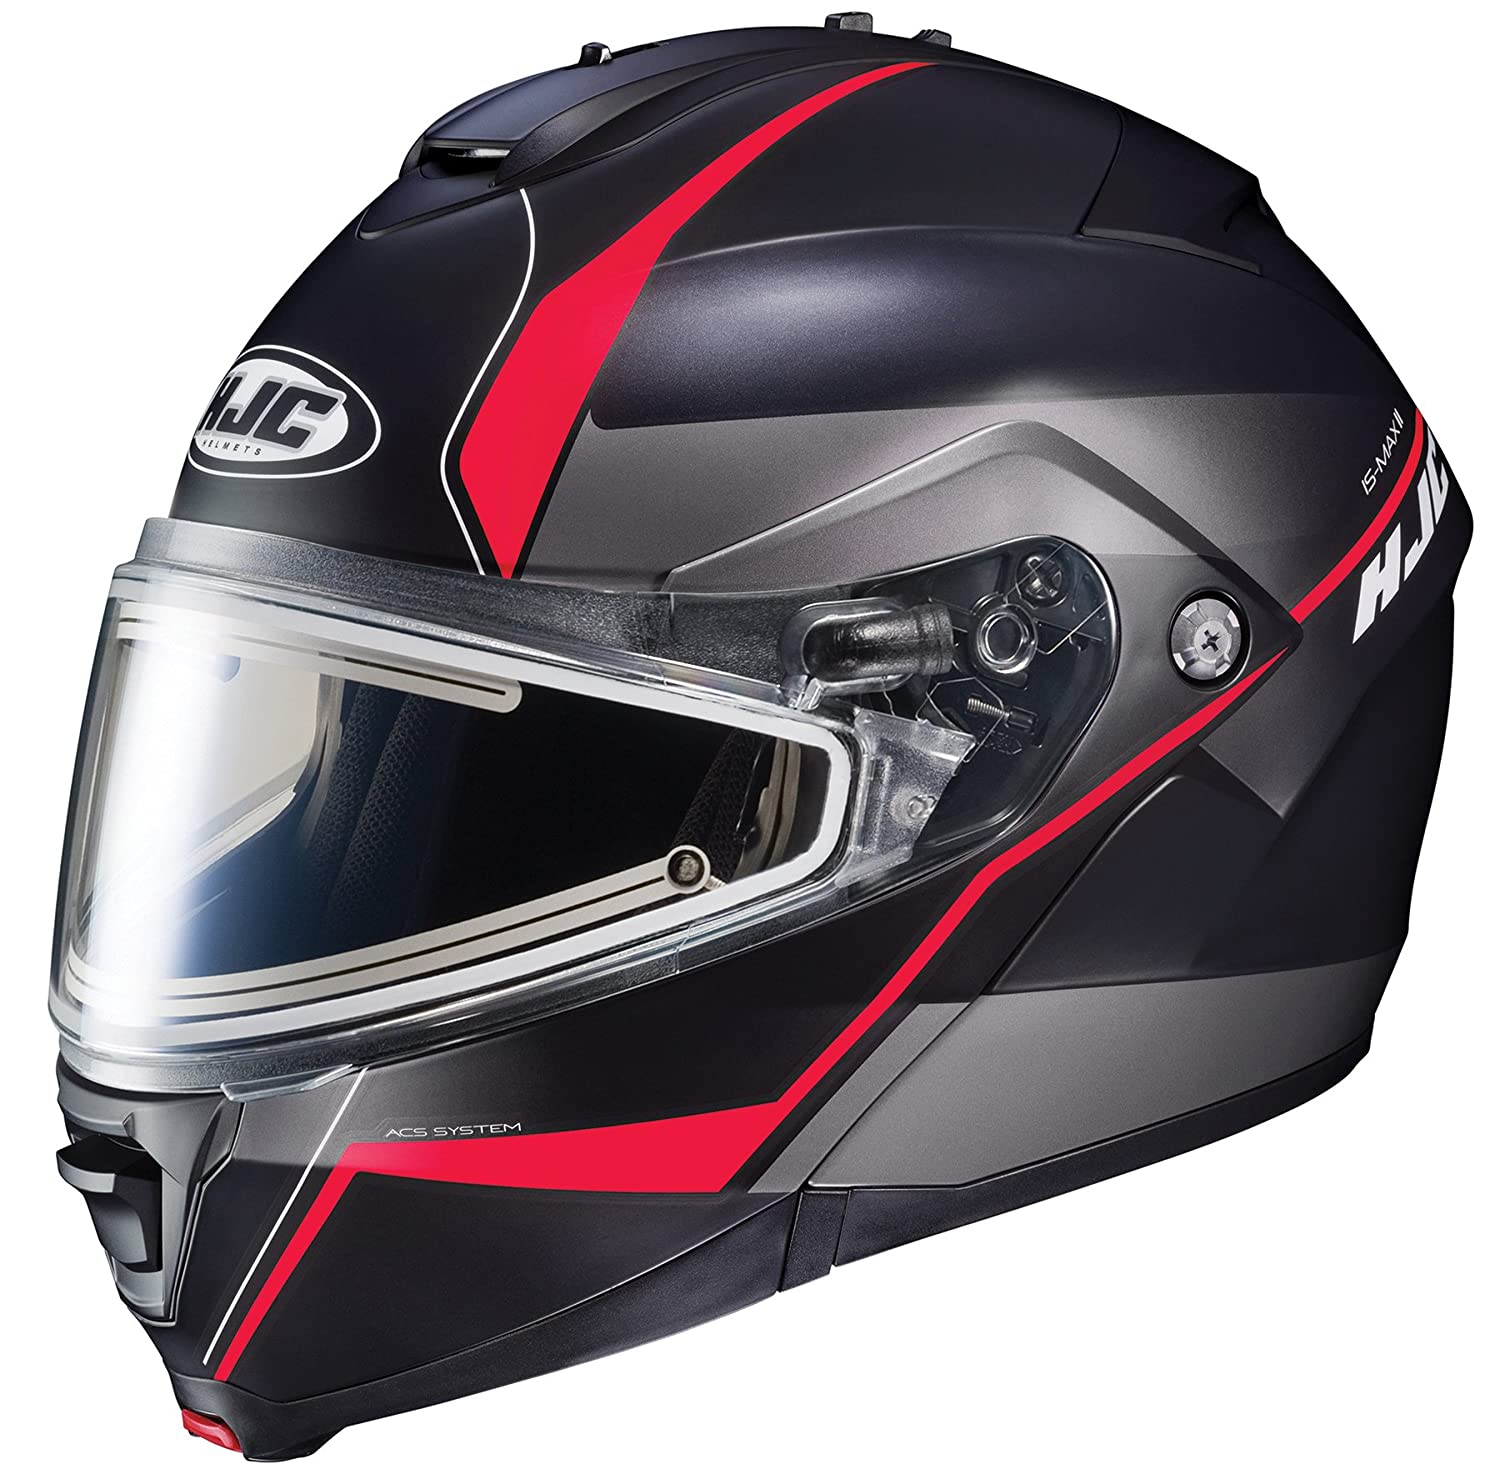 HJC Helmets IS-MAX2SN MINE Unisex-Adult Modular//Flip-Up Snow Helmet with Frameless Electric Shield 191-716 Black//Red, XX-Large